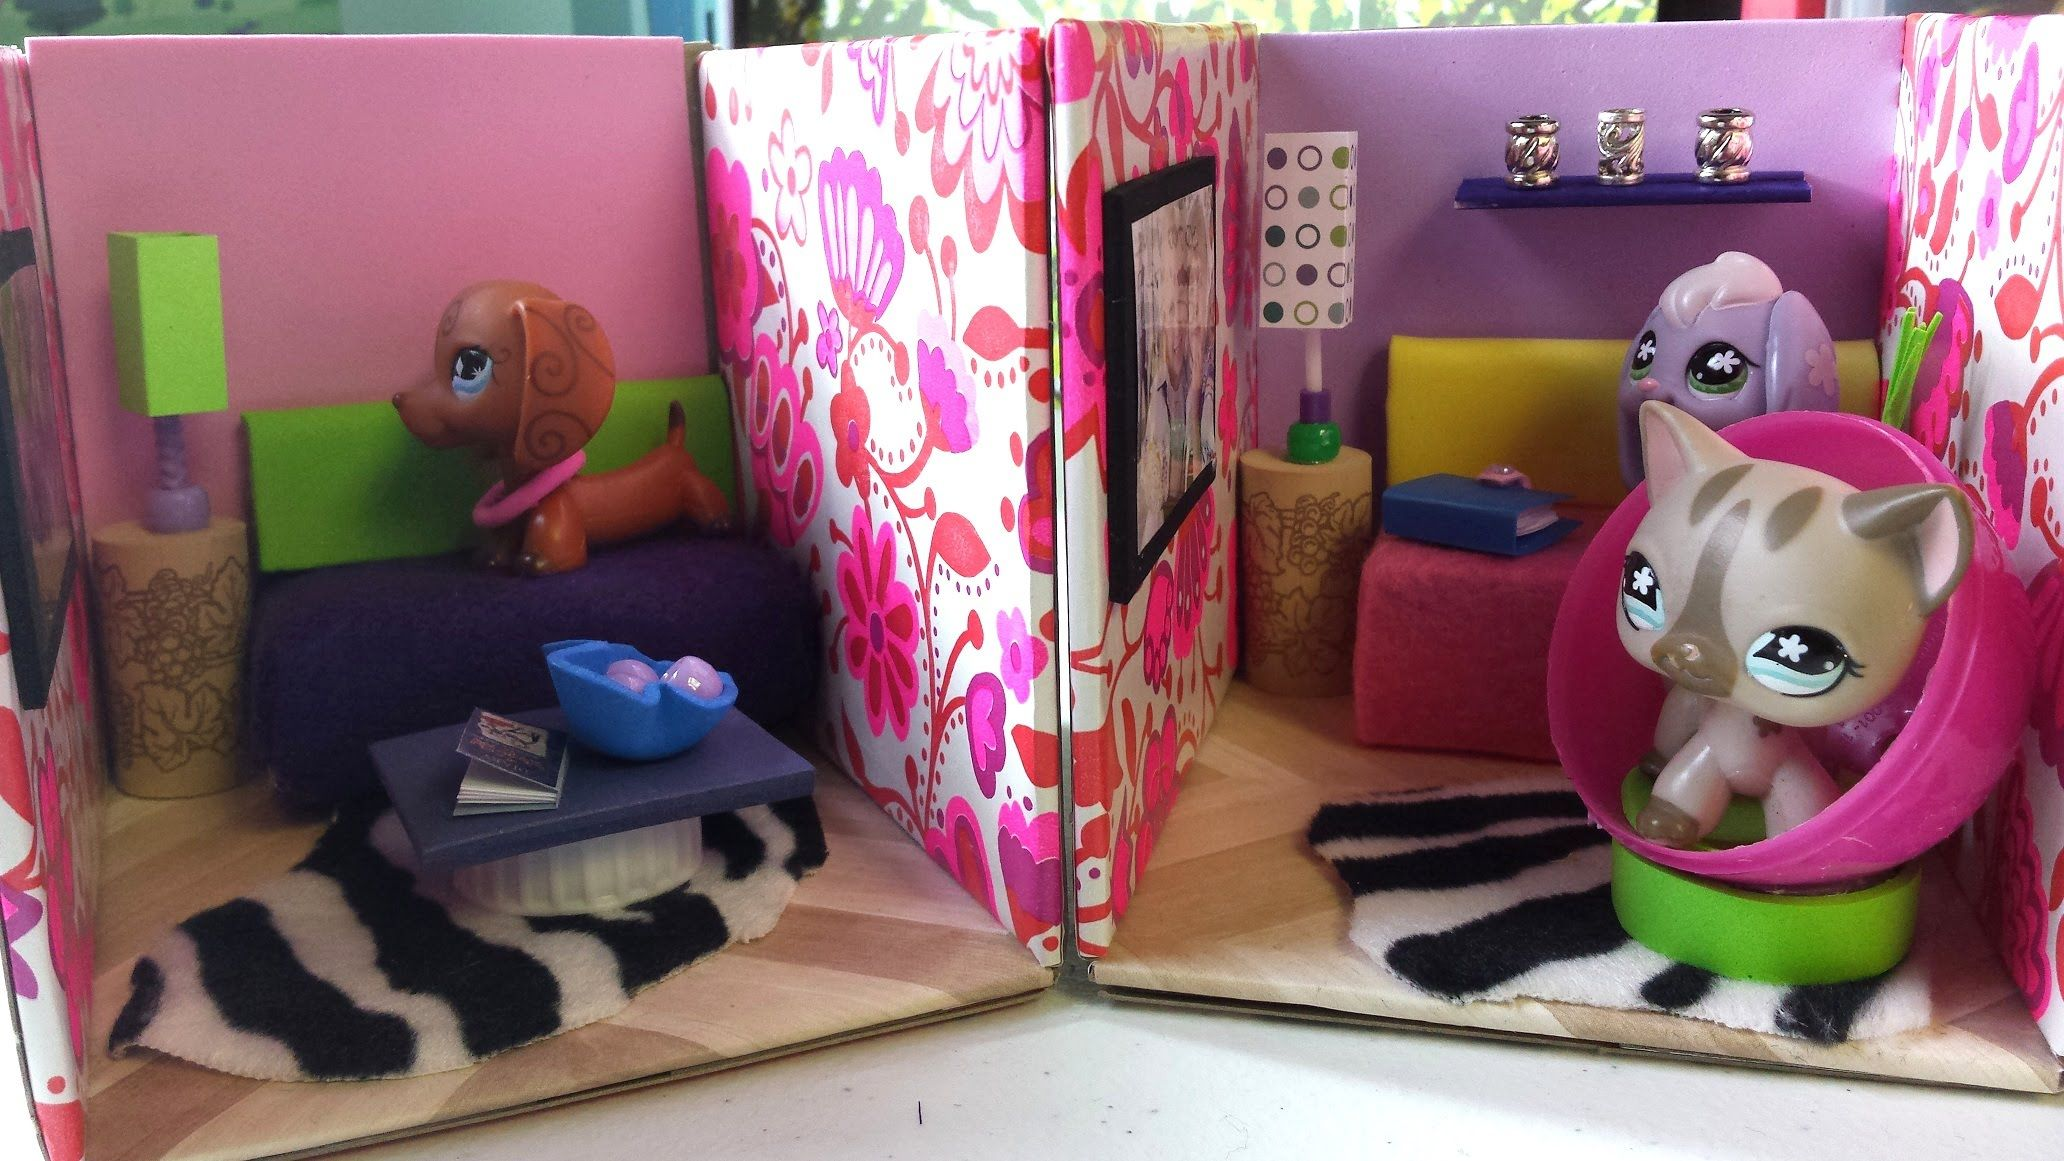 How To Make Cute Lps Living Rooms Dollhouse Diy Lps Crafts Diy Dollhouse Lps Diy Accessories